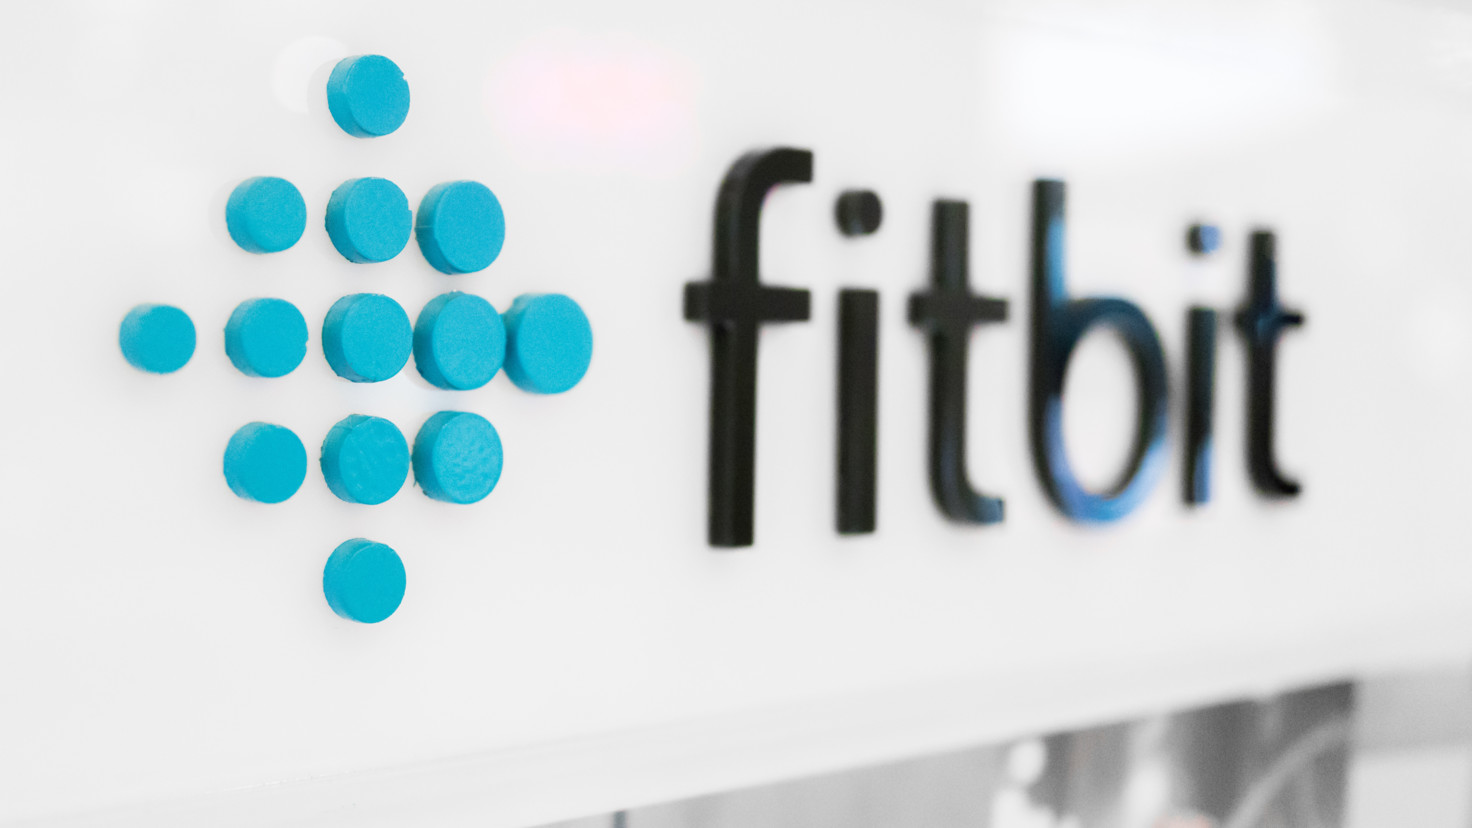 Fitbit to shift manufacturing operations out of China in 2020